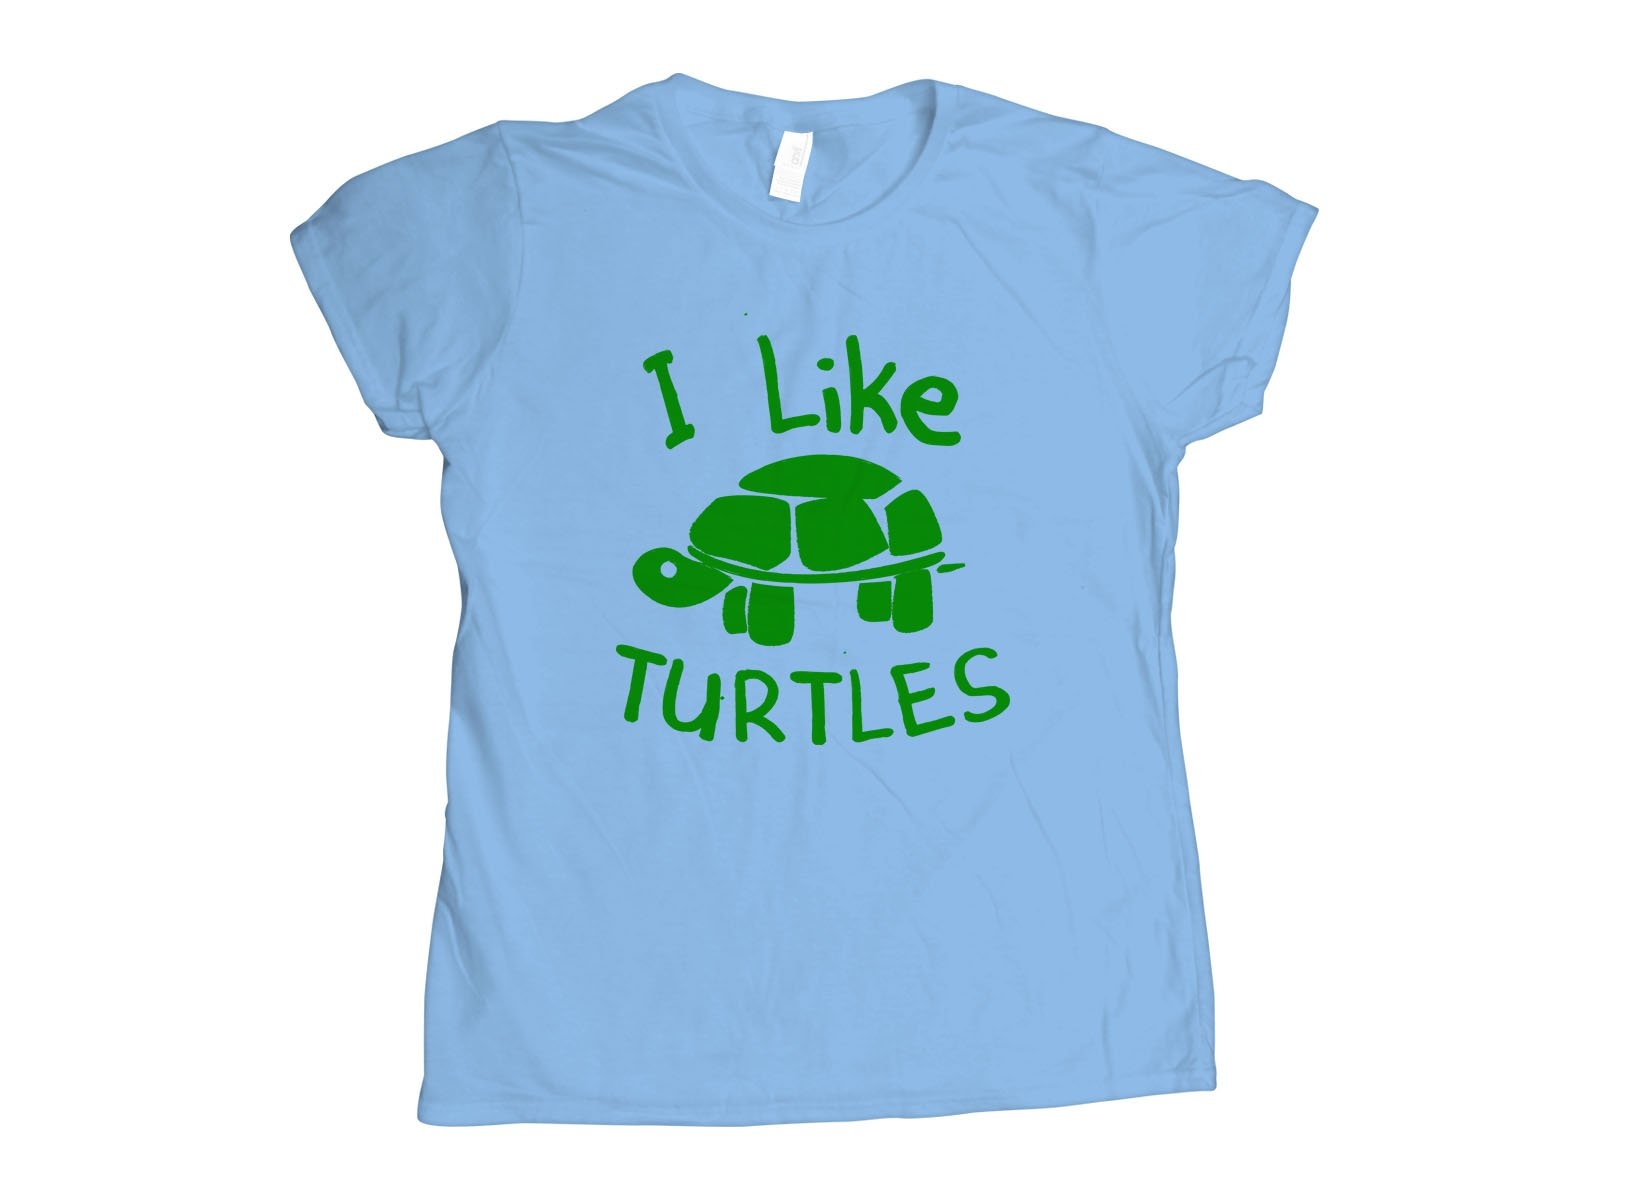 I Like Turtles on Womens T-Shirt